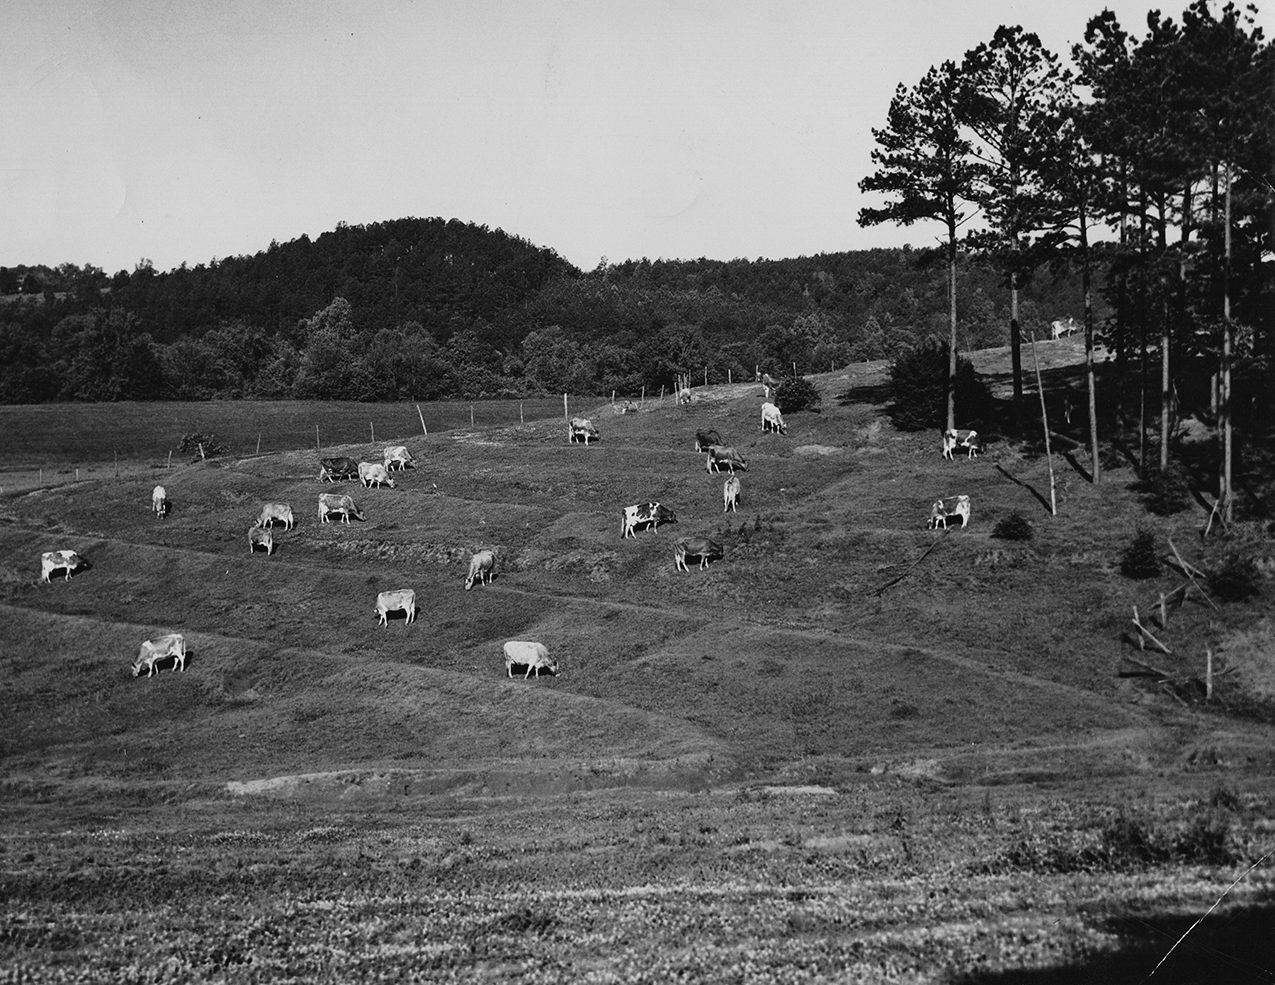 IV. Cows in pasture